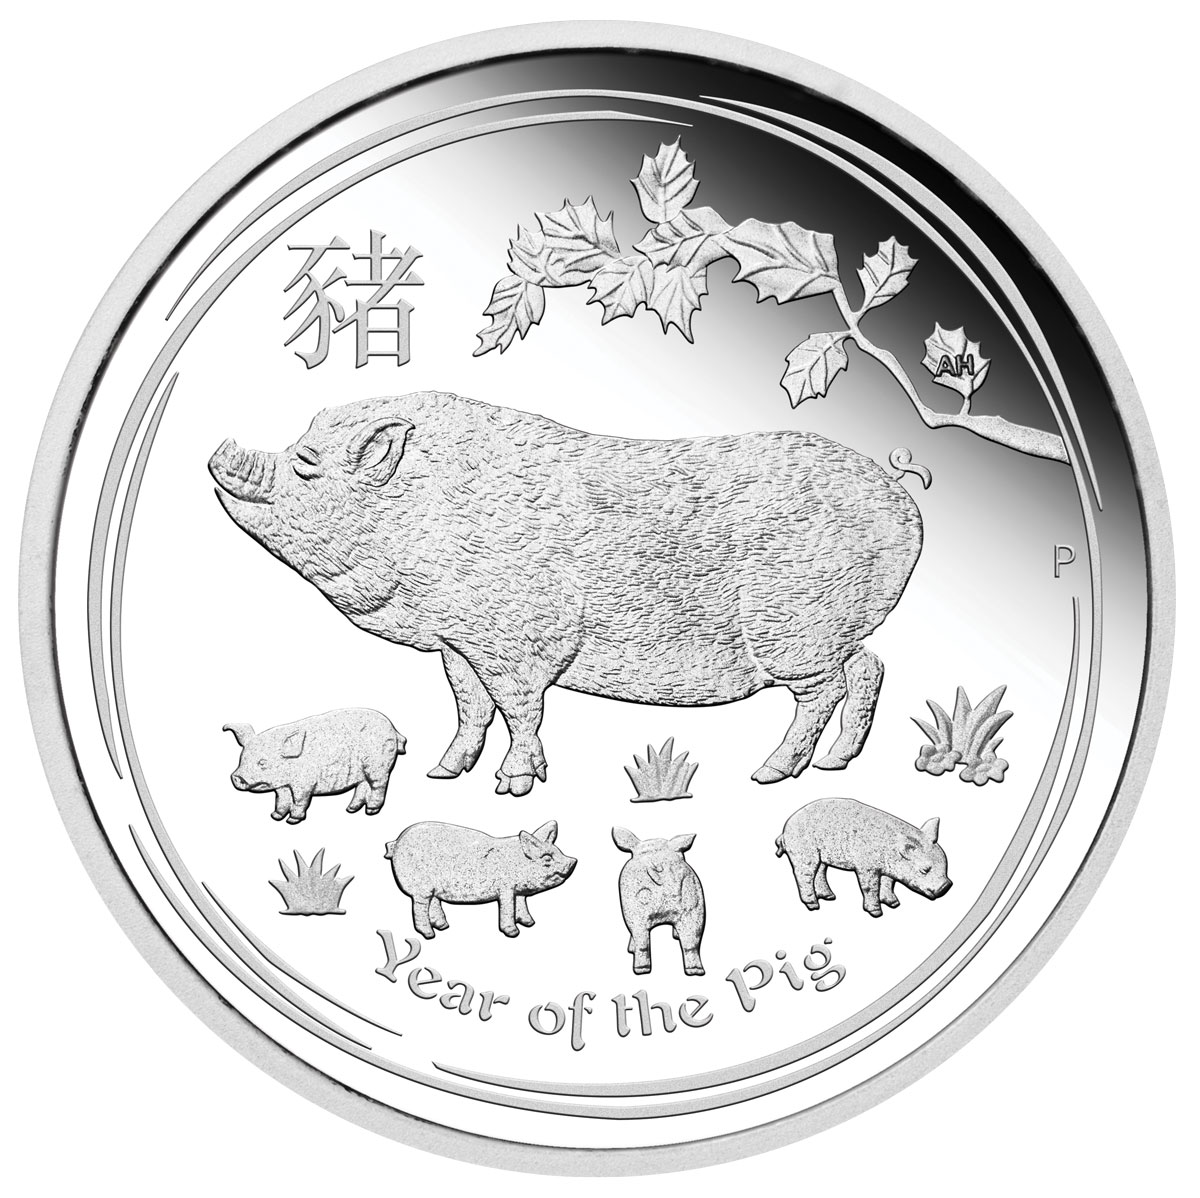 2019-P Australia Year of the Pig 1/2 oz Silver Lunar (Series 2) Proof $0.50 Coin GEM Proof